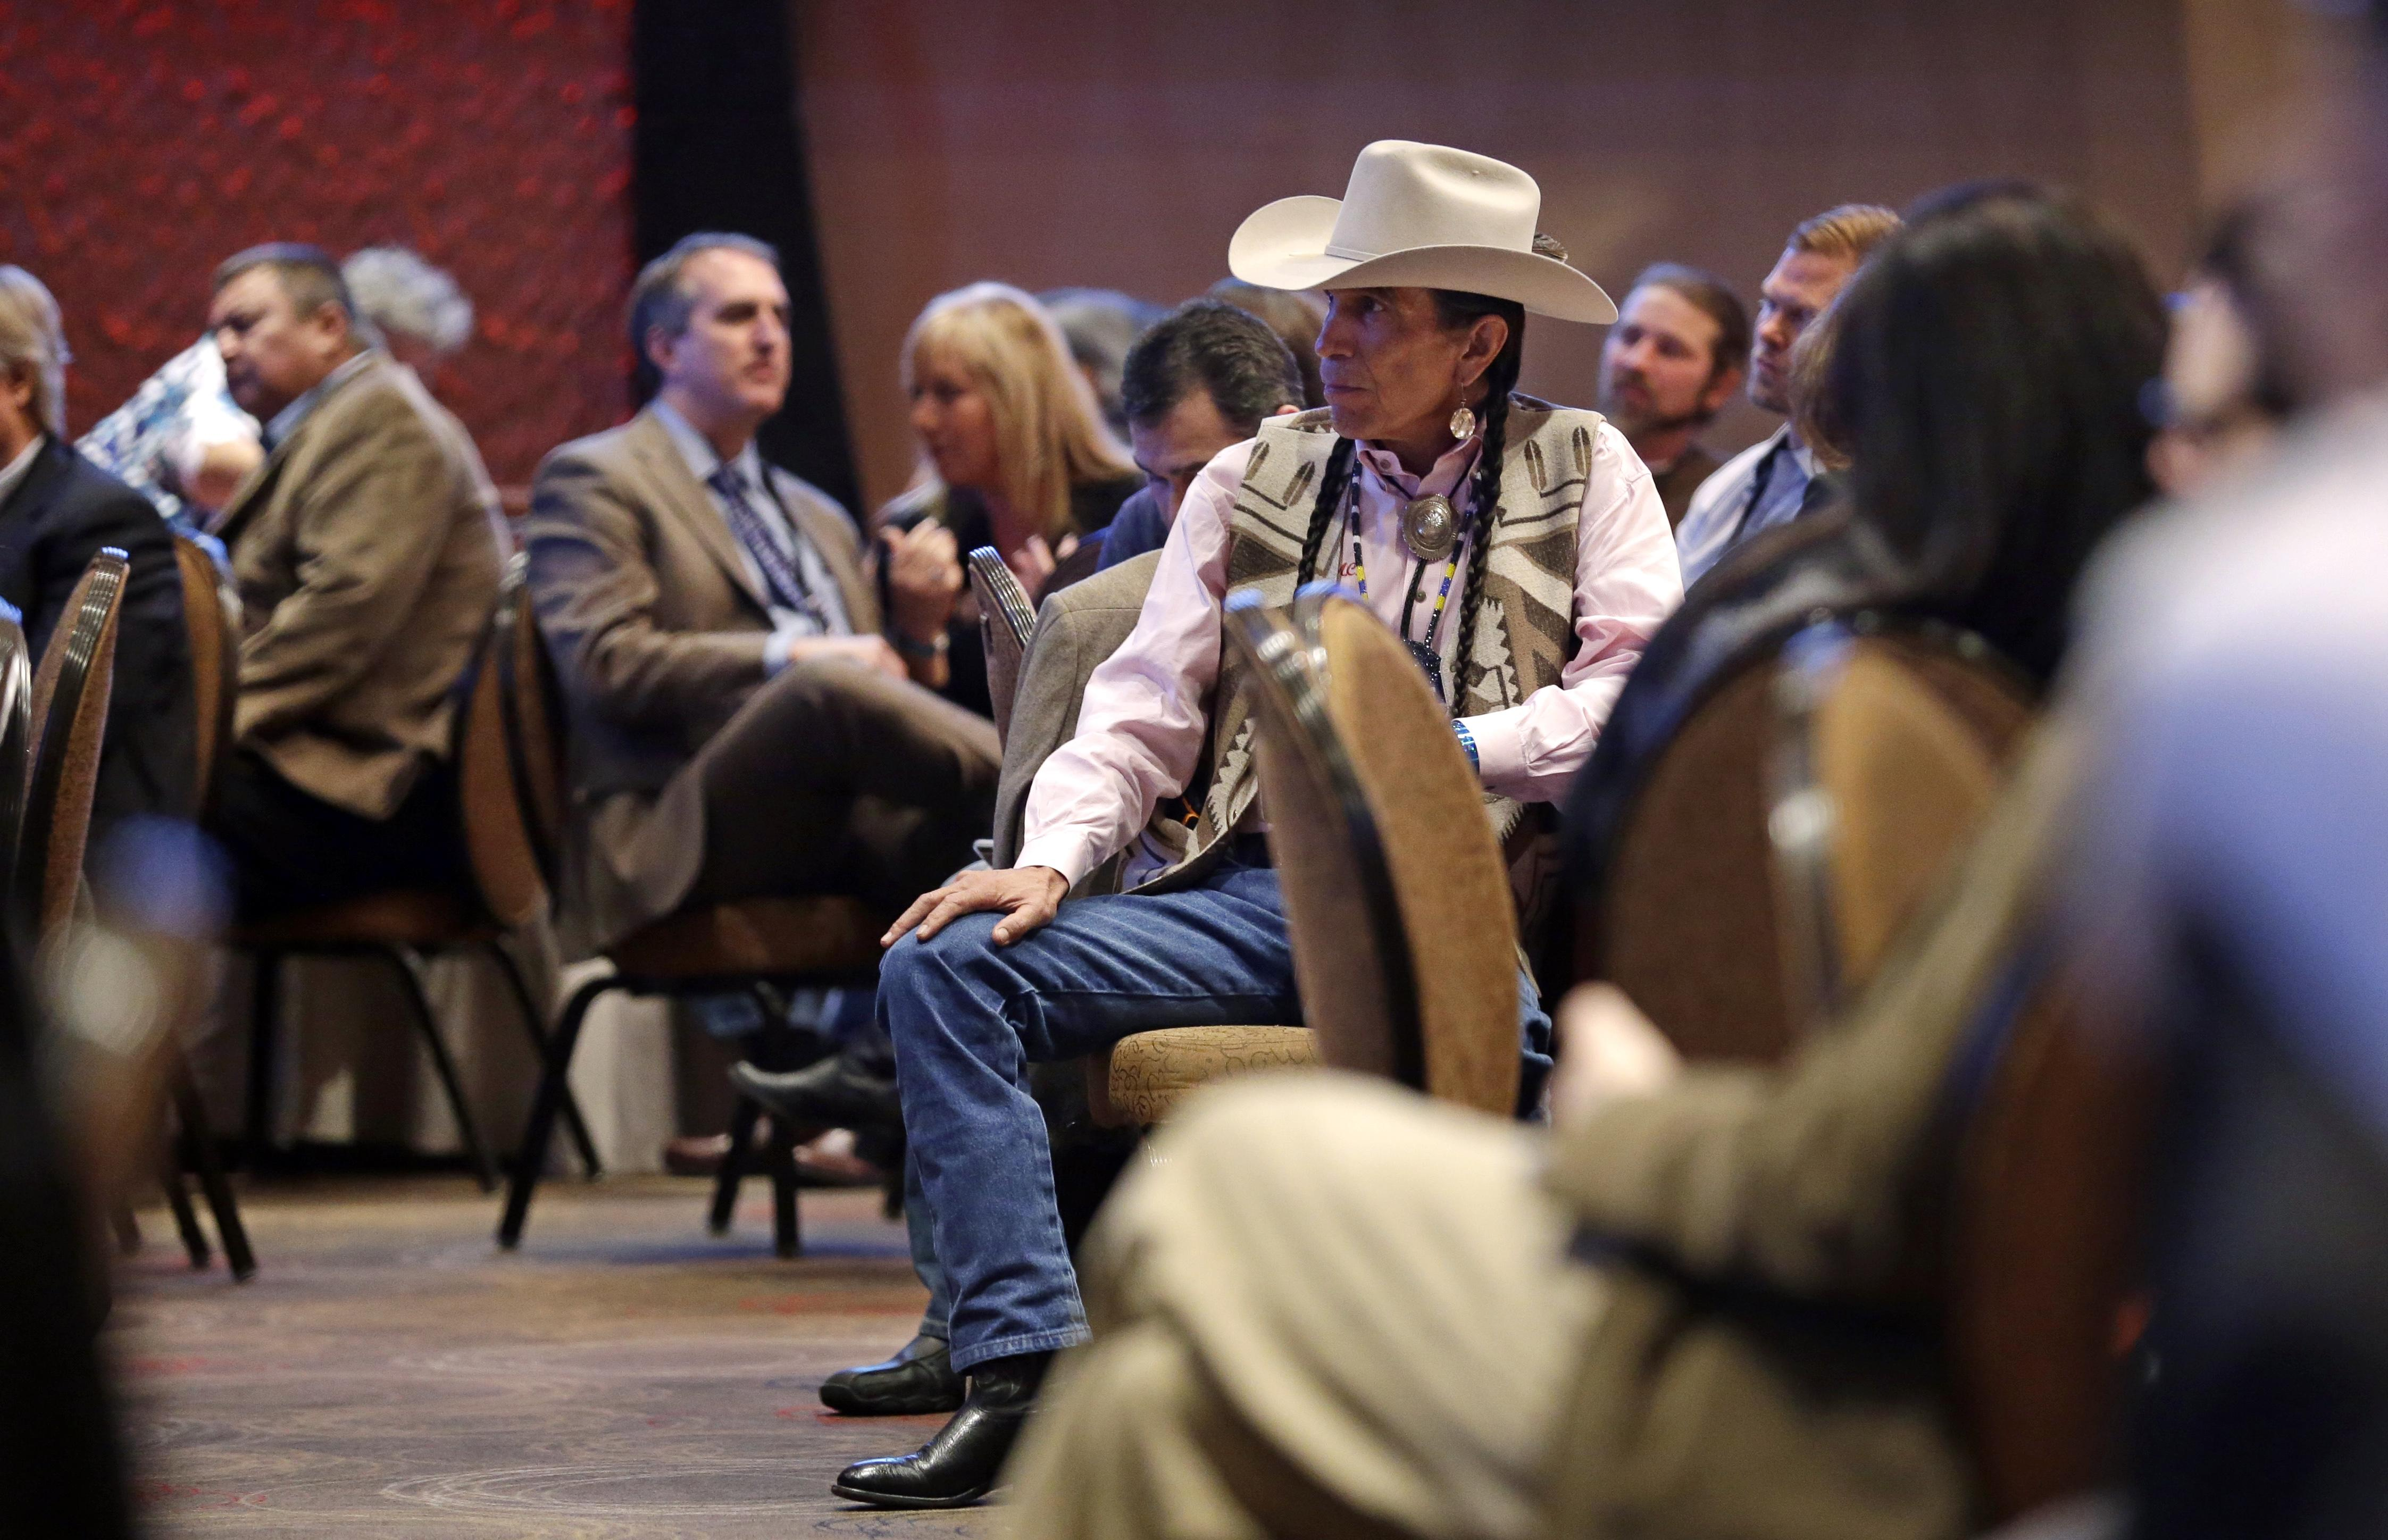 Native American tribes converge to discuss pot legalization